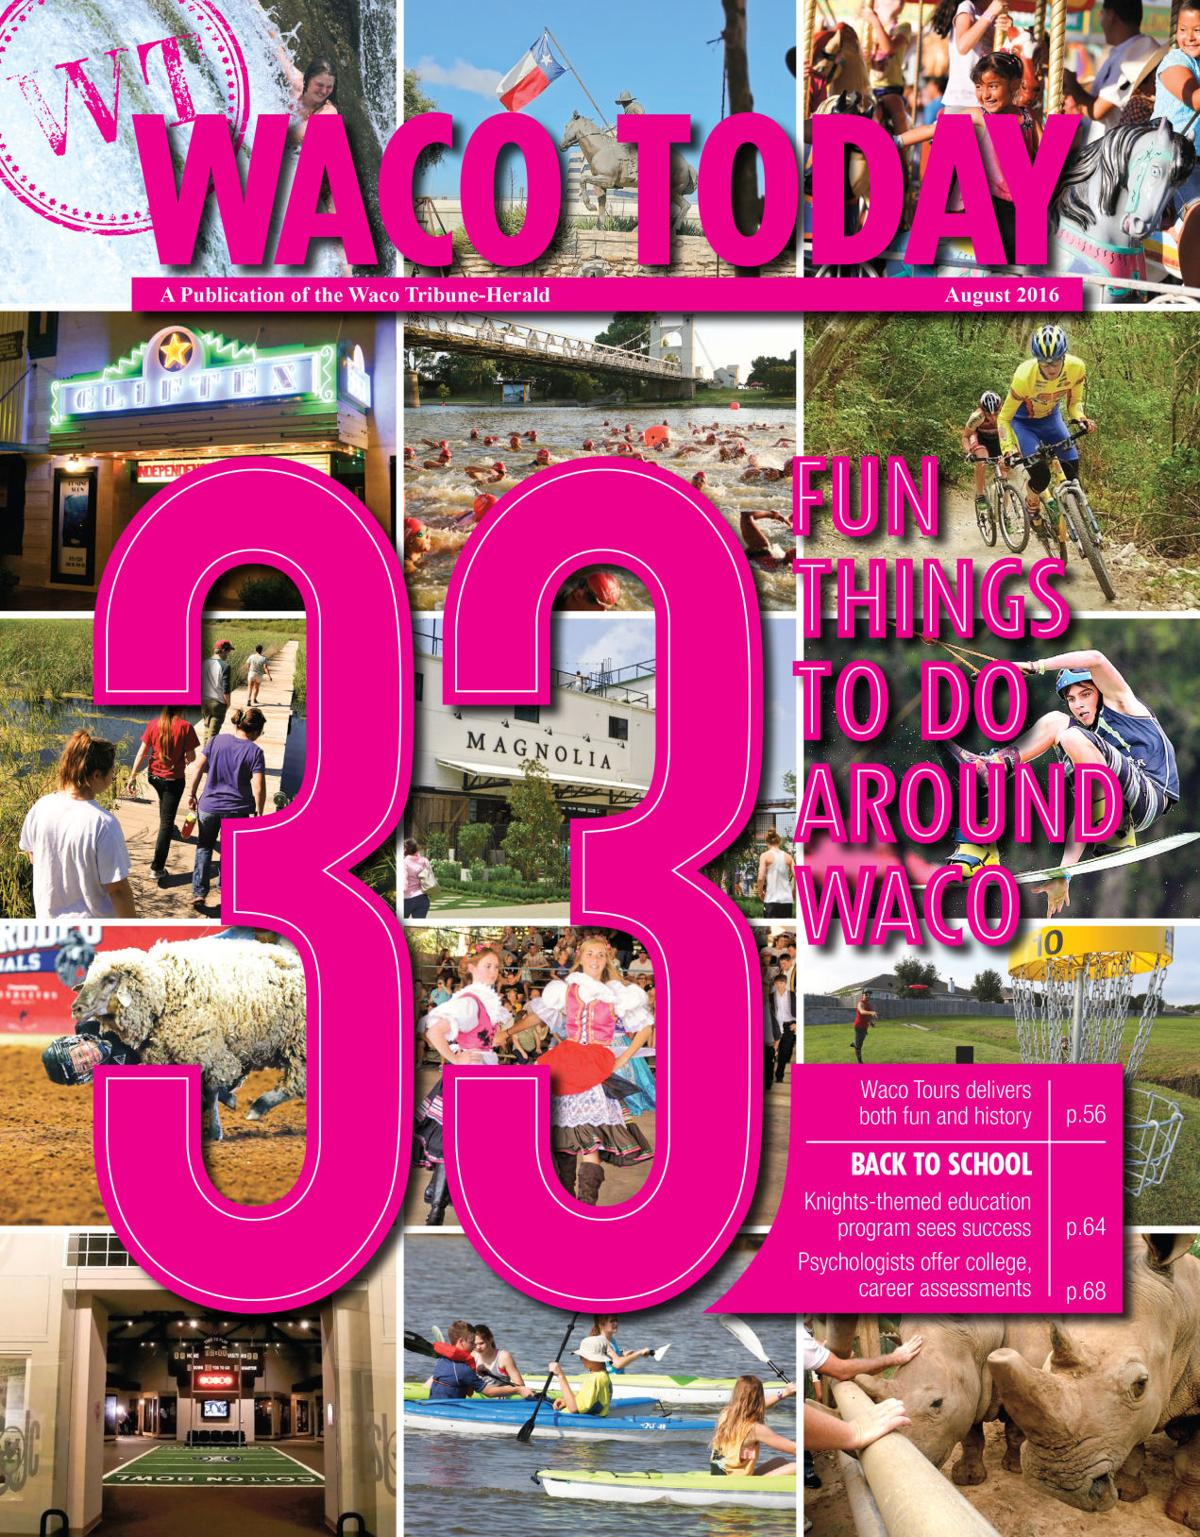 33 fun things to do around waco waco today wacotrib com